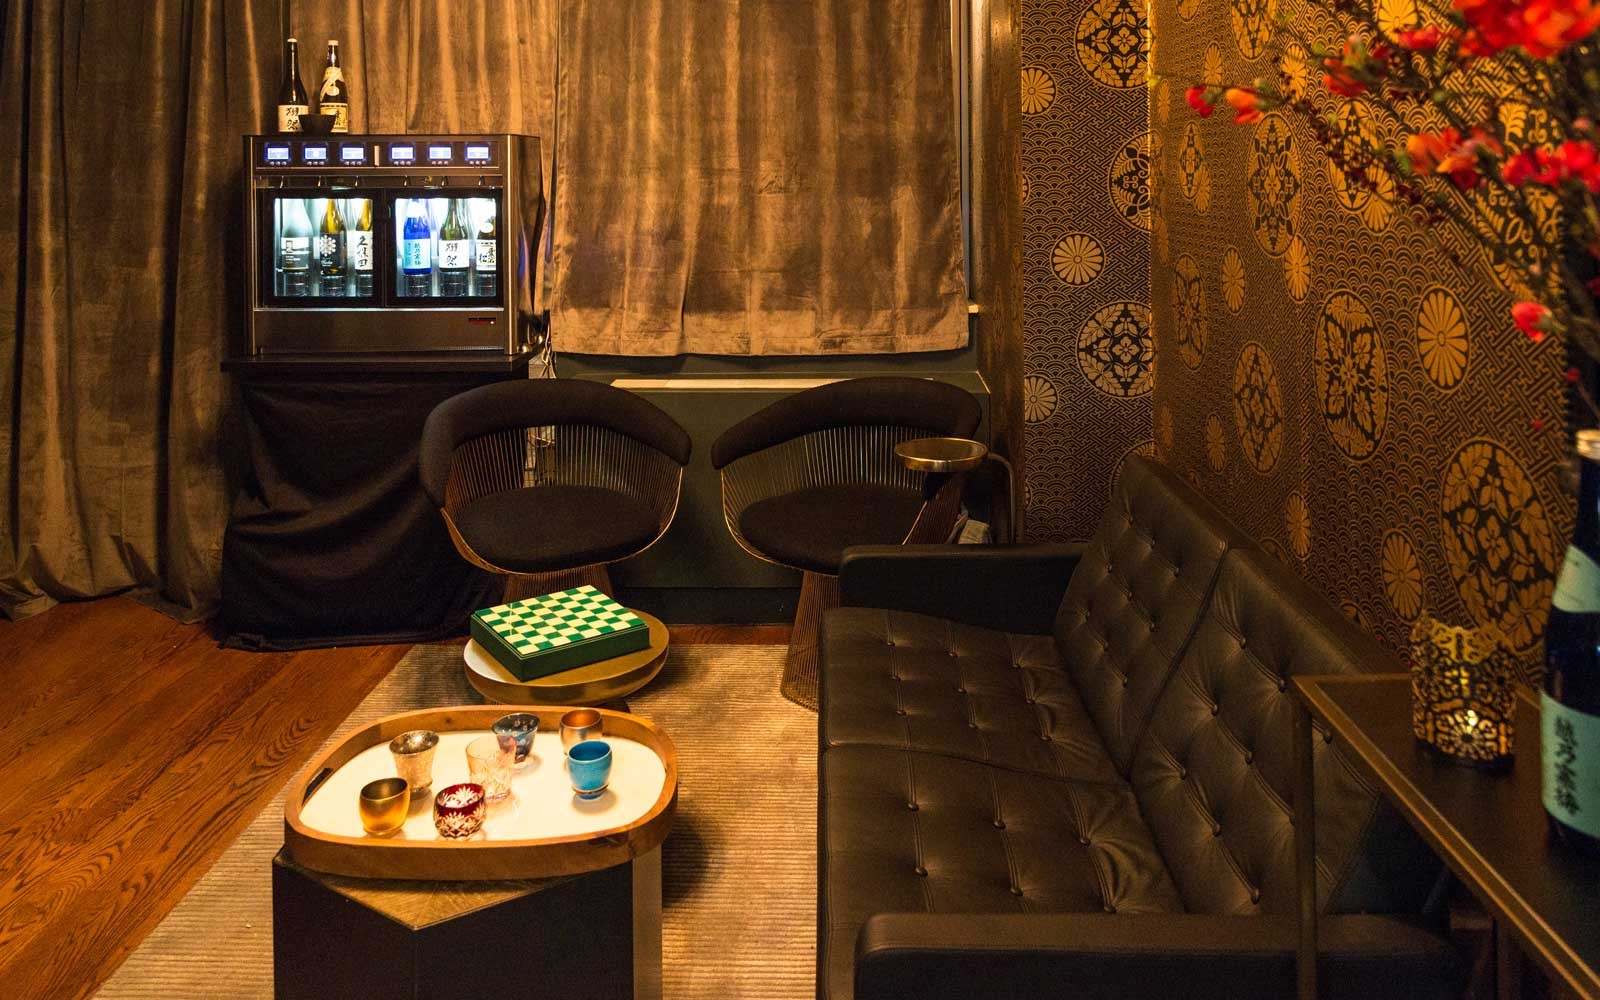 The lounge area at the Sushi by Bou Suite 1001 offers a cozy atmosphere.